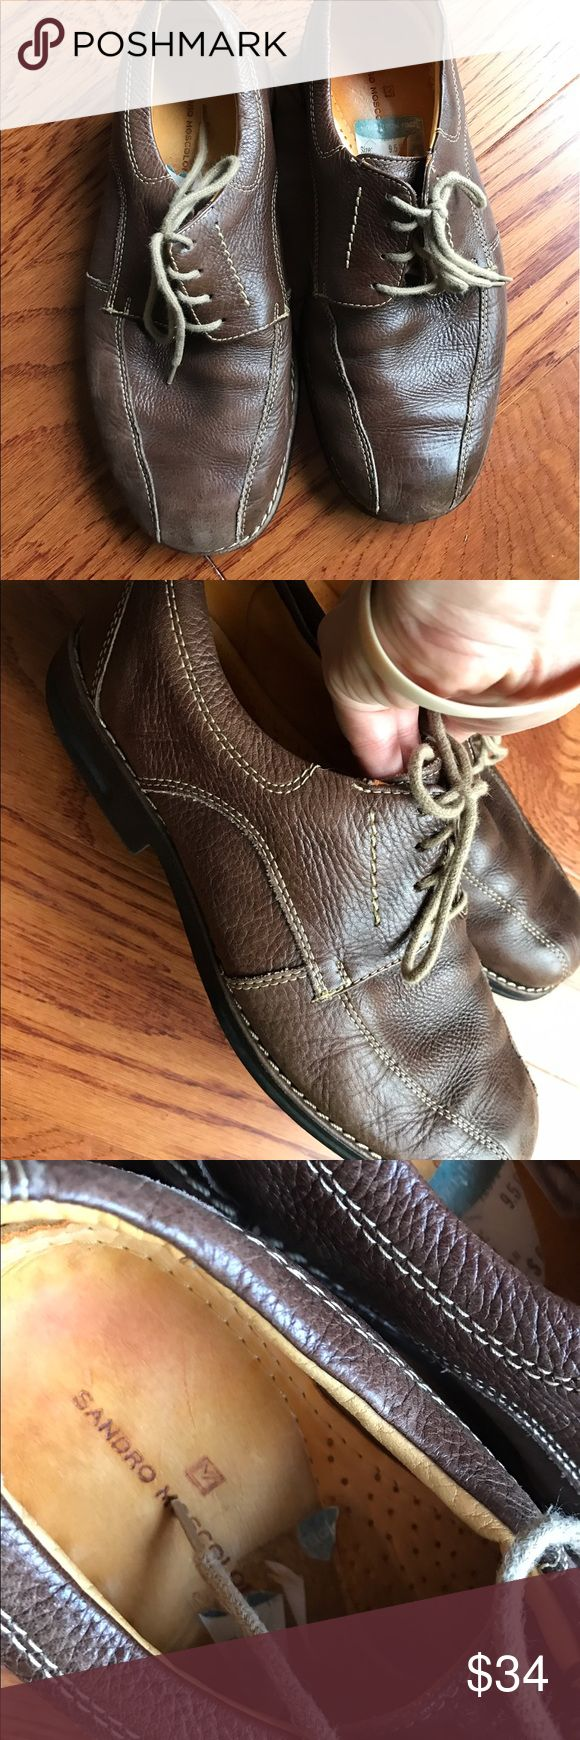 Sandro Moscoloni leather shoes men's 9.5 GUC Smoke and pet free home. Bundle discount 20% Sandro Shoes